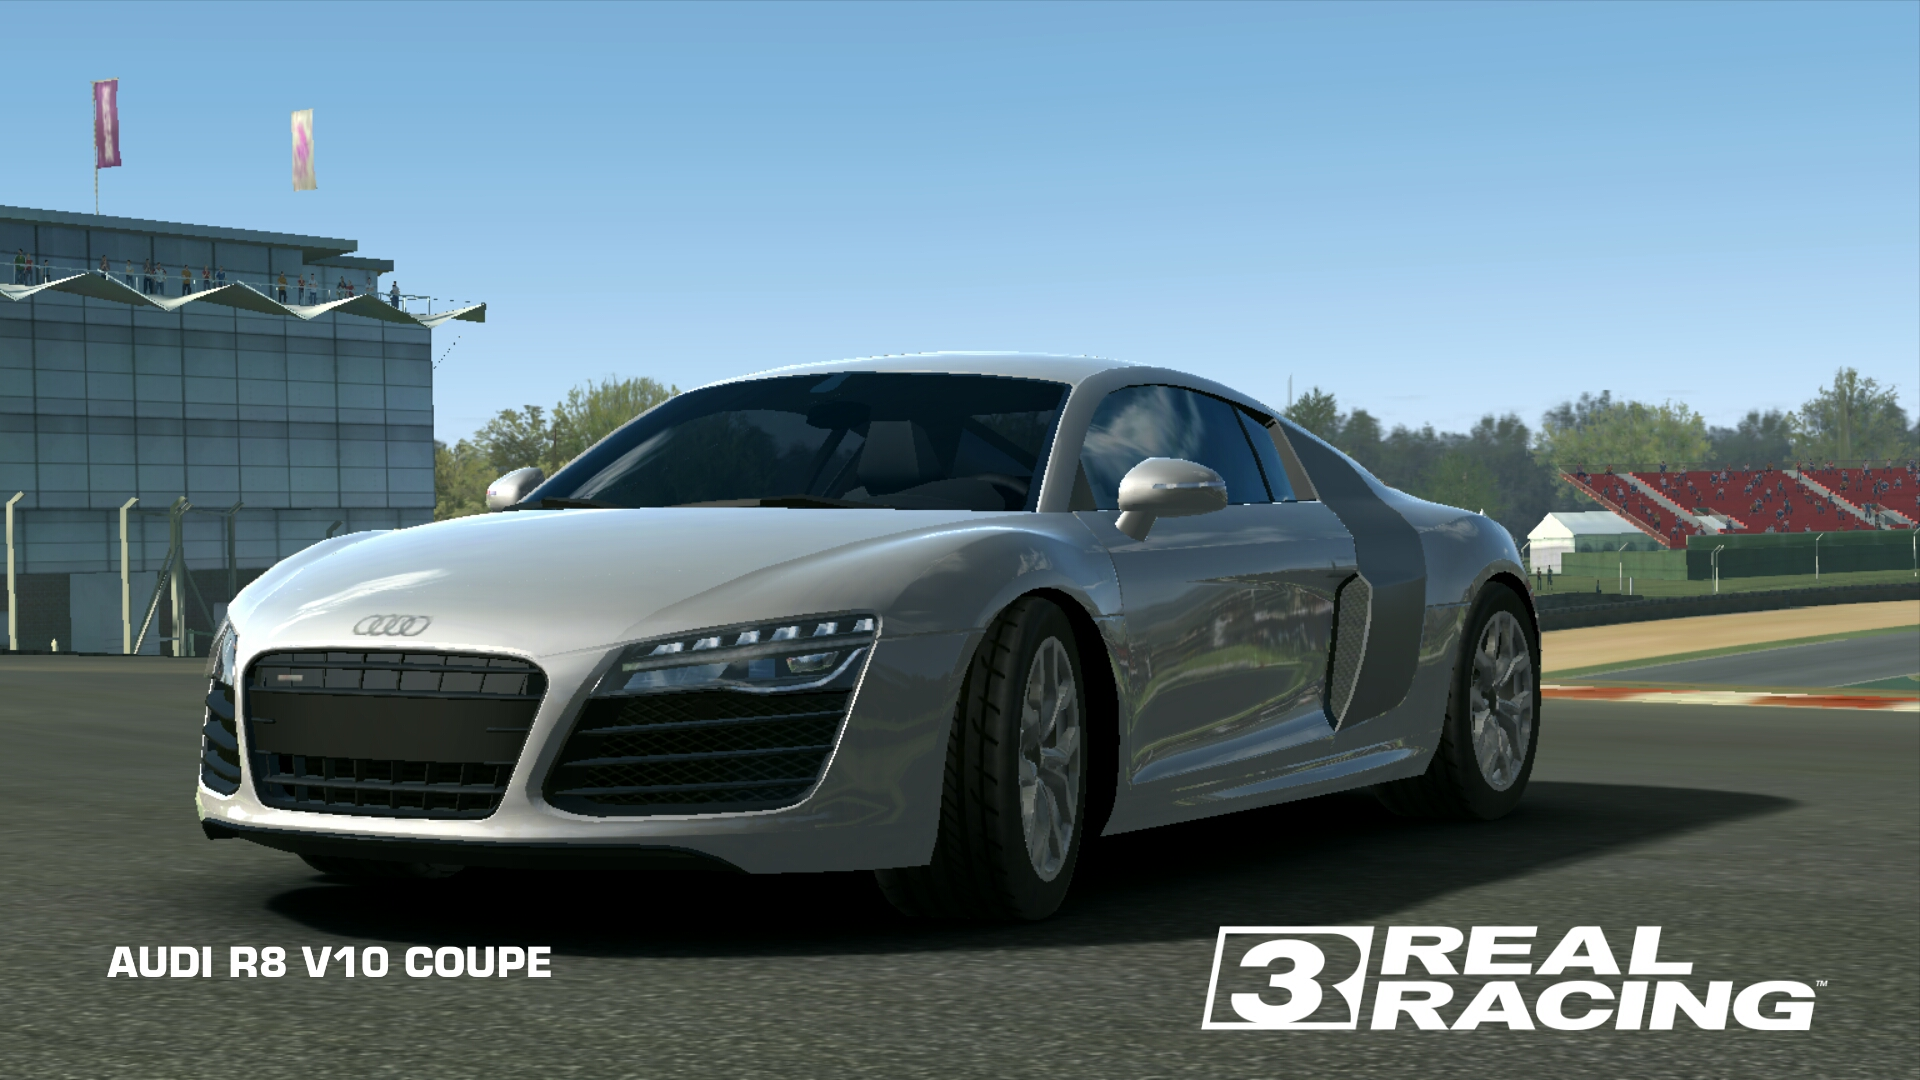 R8 V10 COUPE